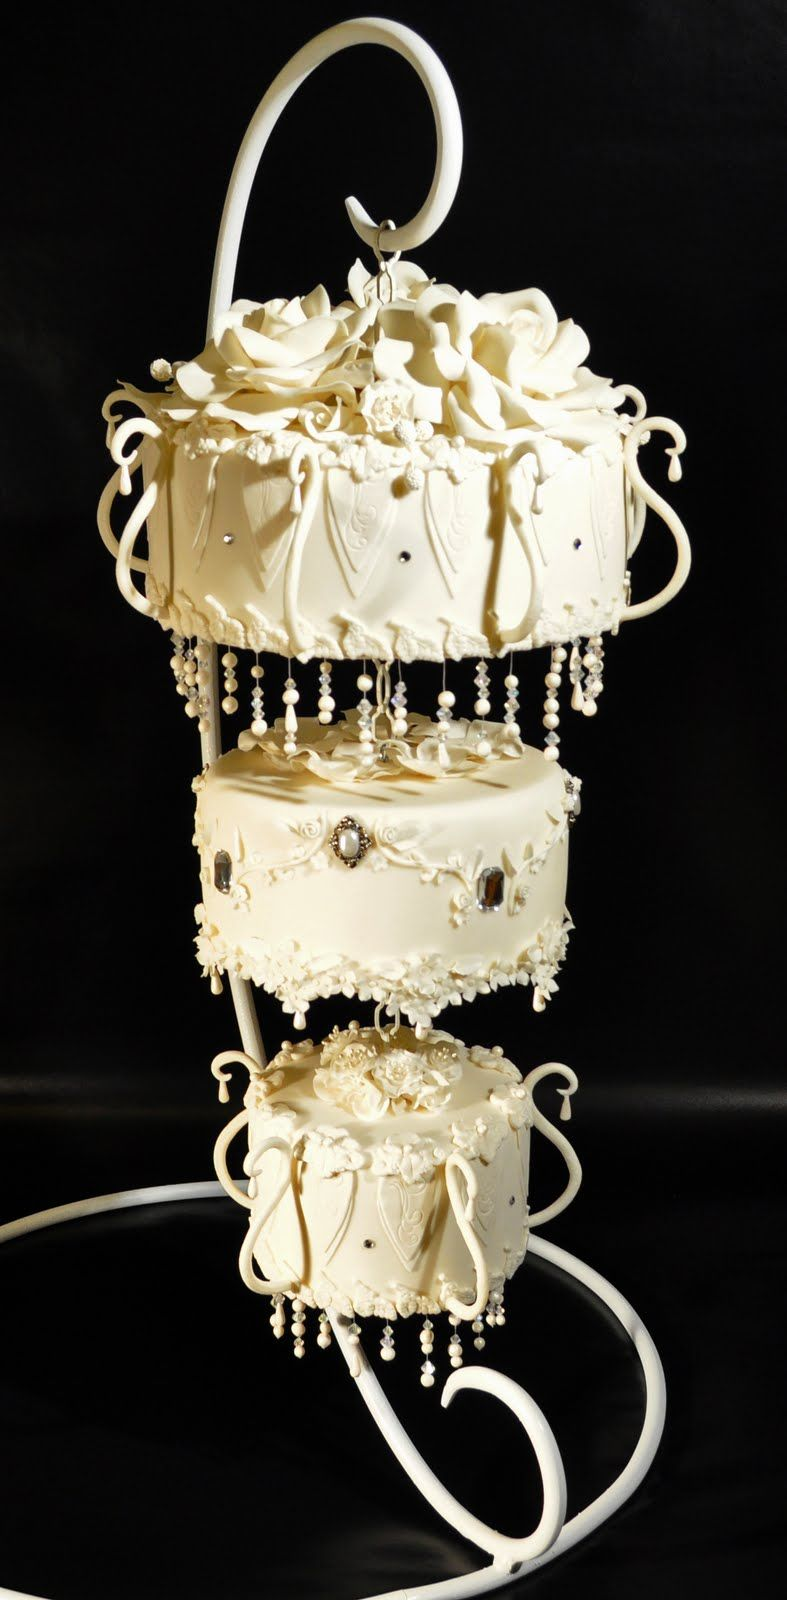 A chandelier cake she has several pictures of her assembling it a chandelier cake she has several pictures of her assembling it judys cakes mozeypictures Image collections